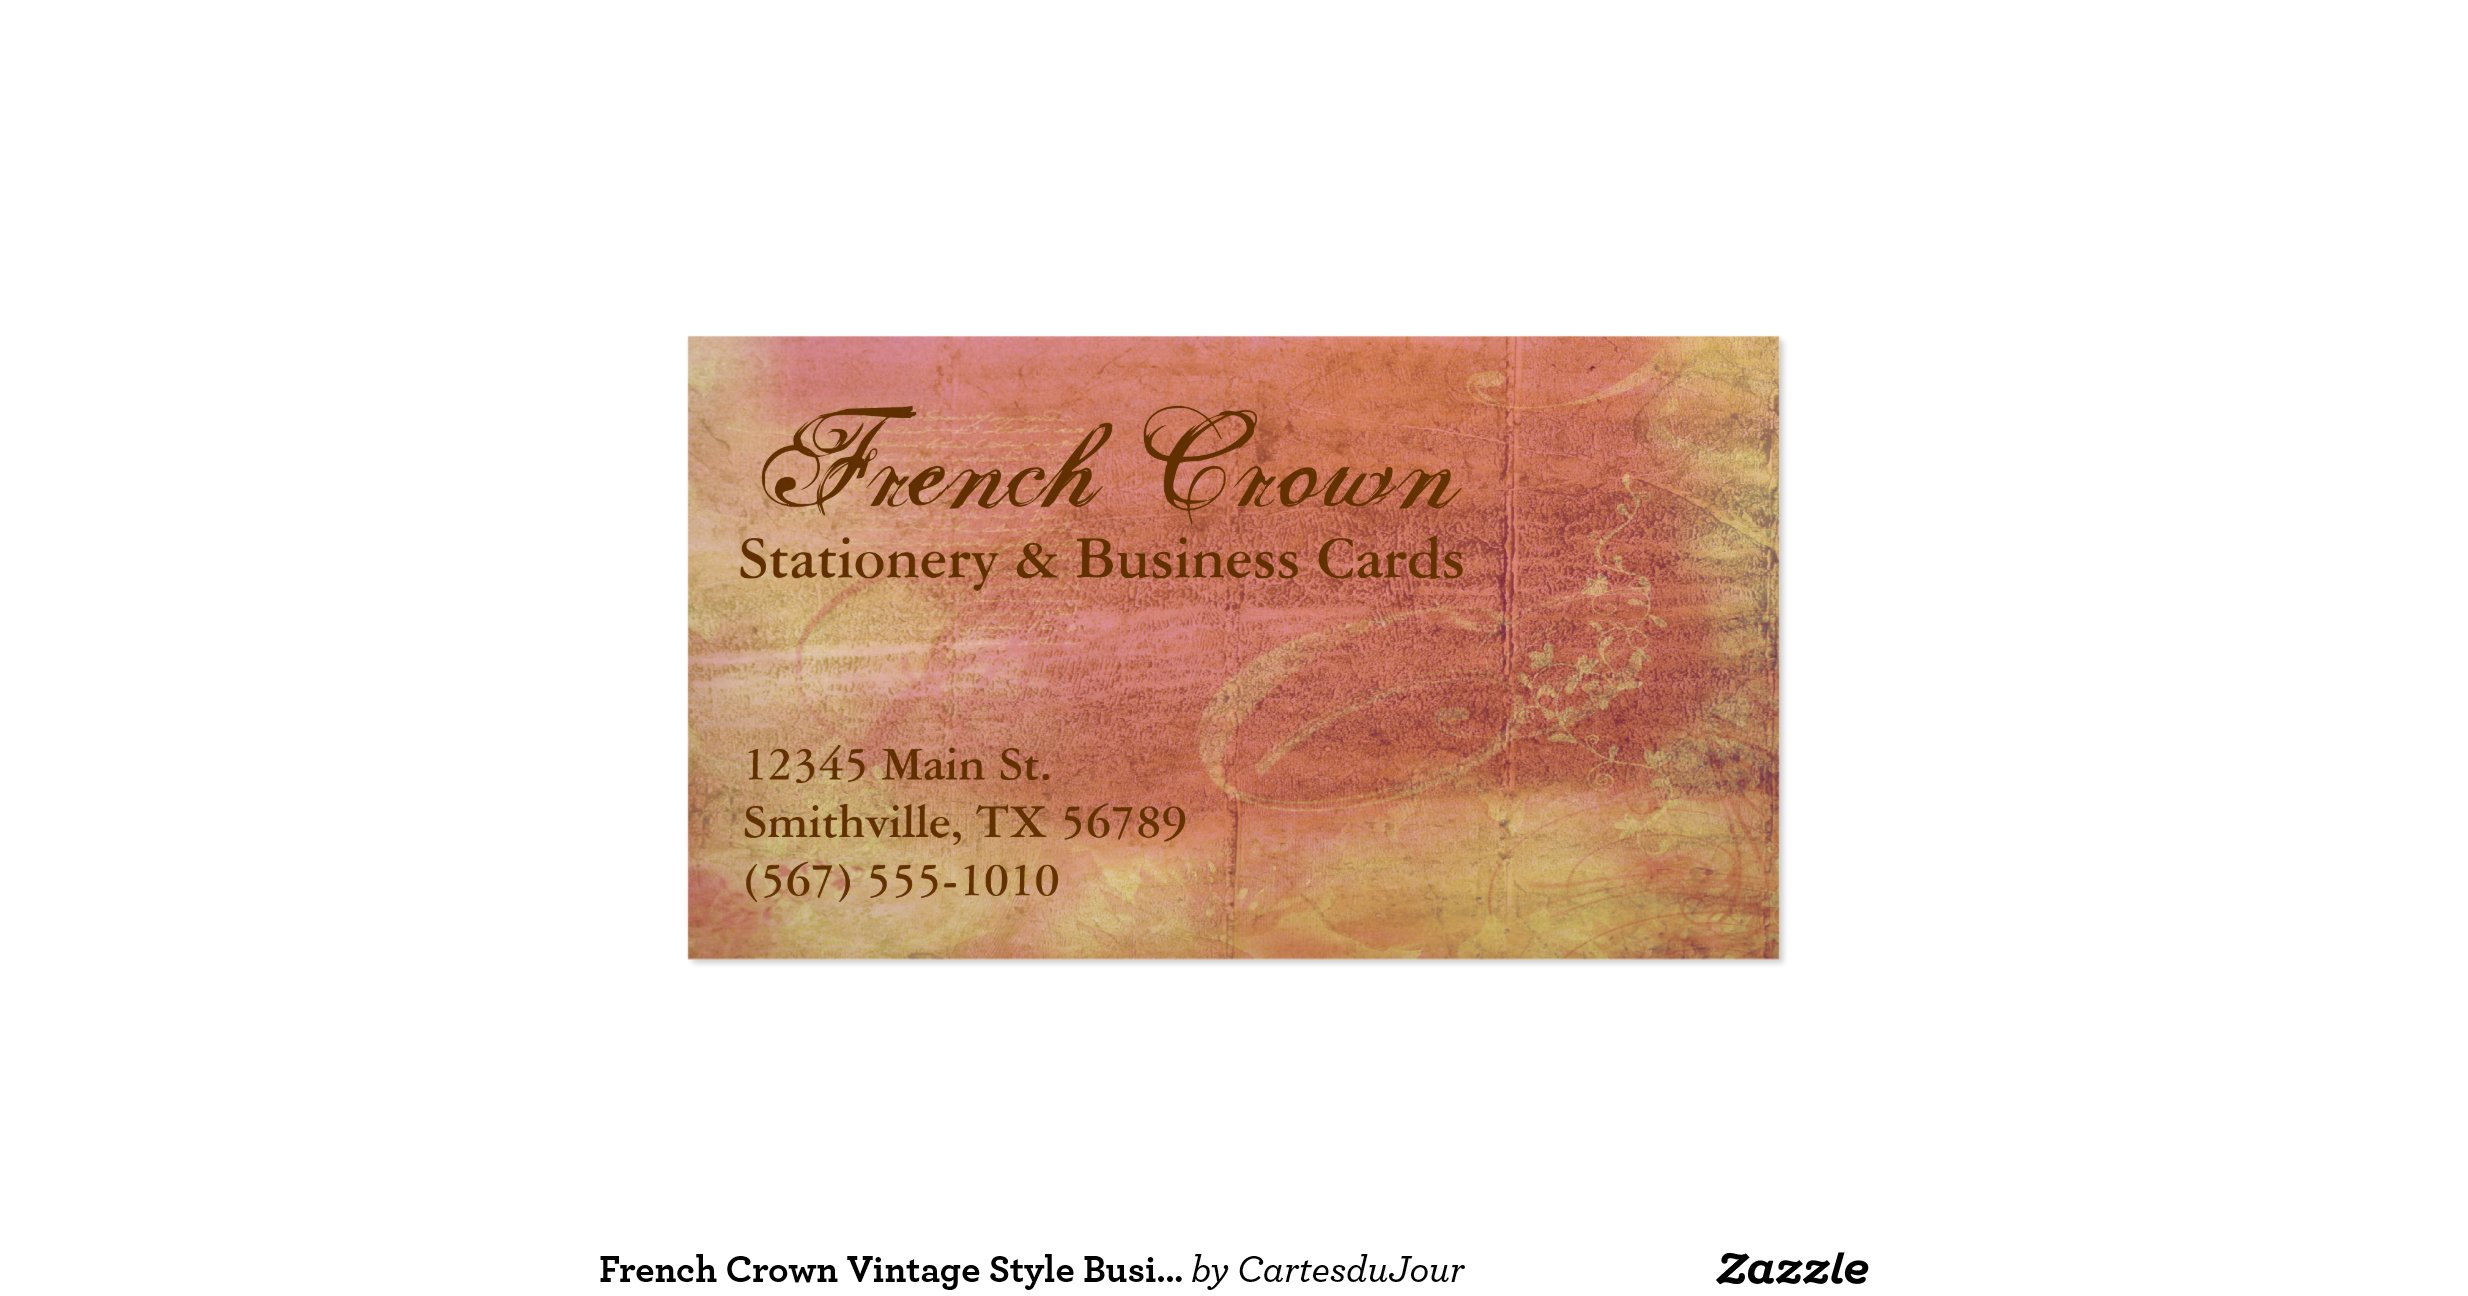 French crown vintage style business cards for Business cards vintage style